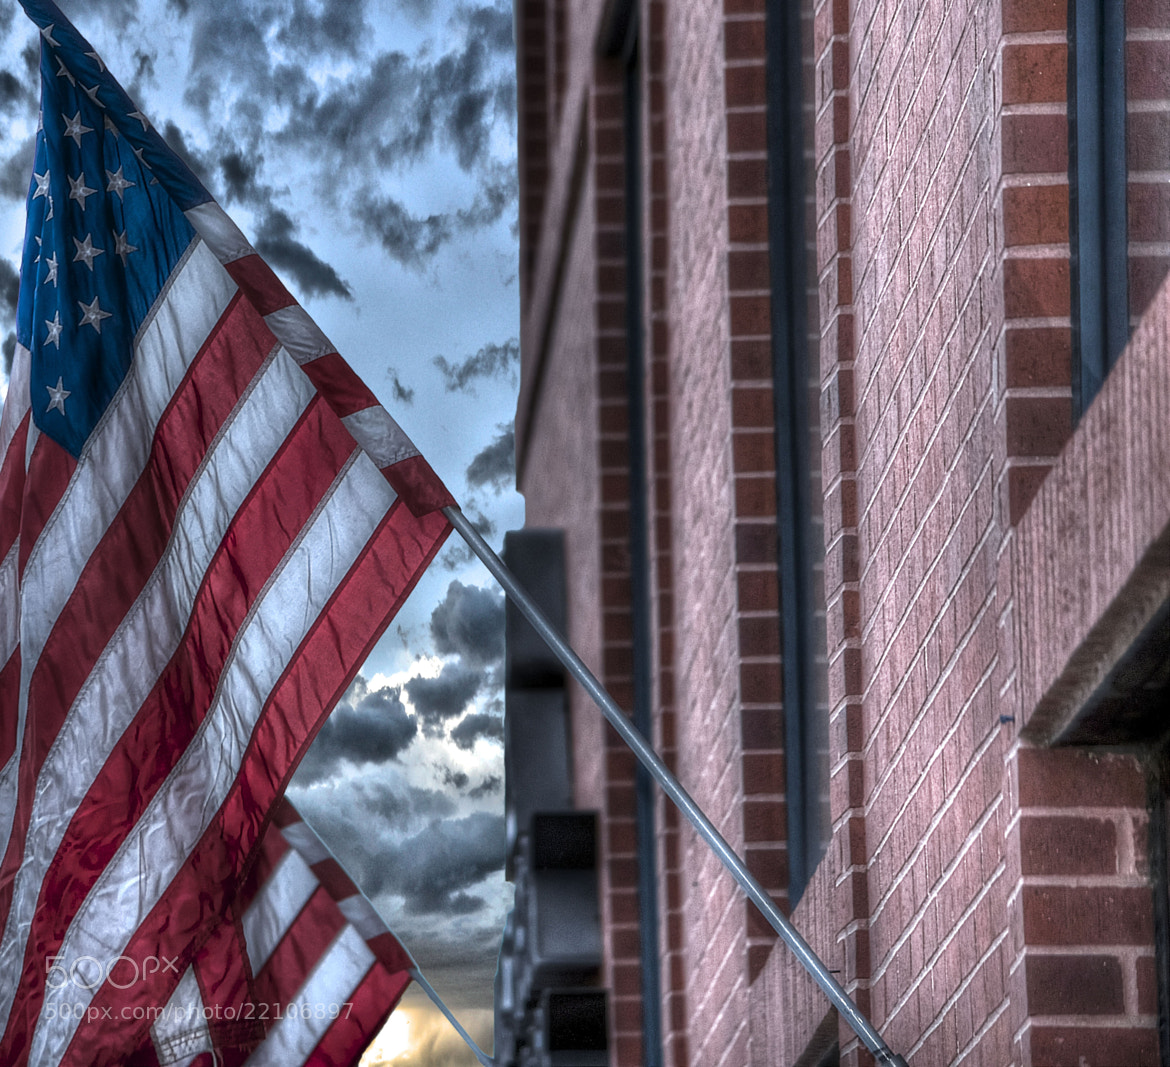 Photograph Flags over Old Colorado City by Jeff Heredia on 500px